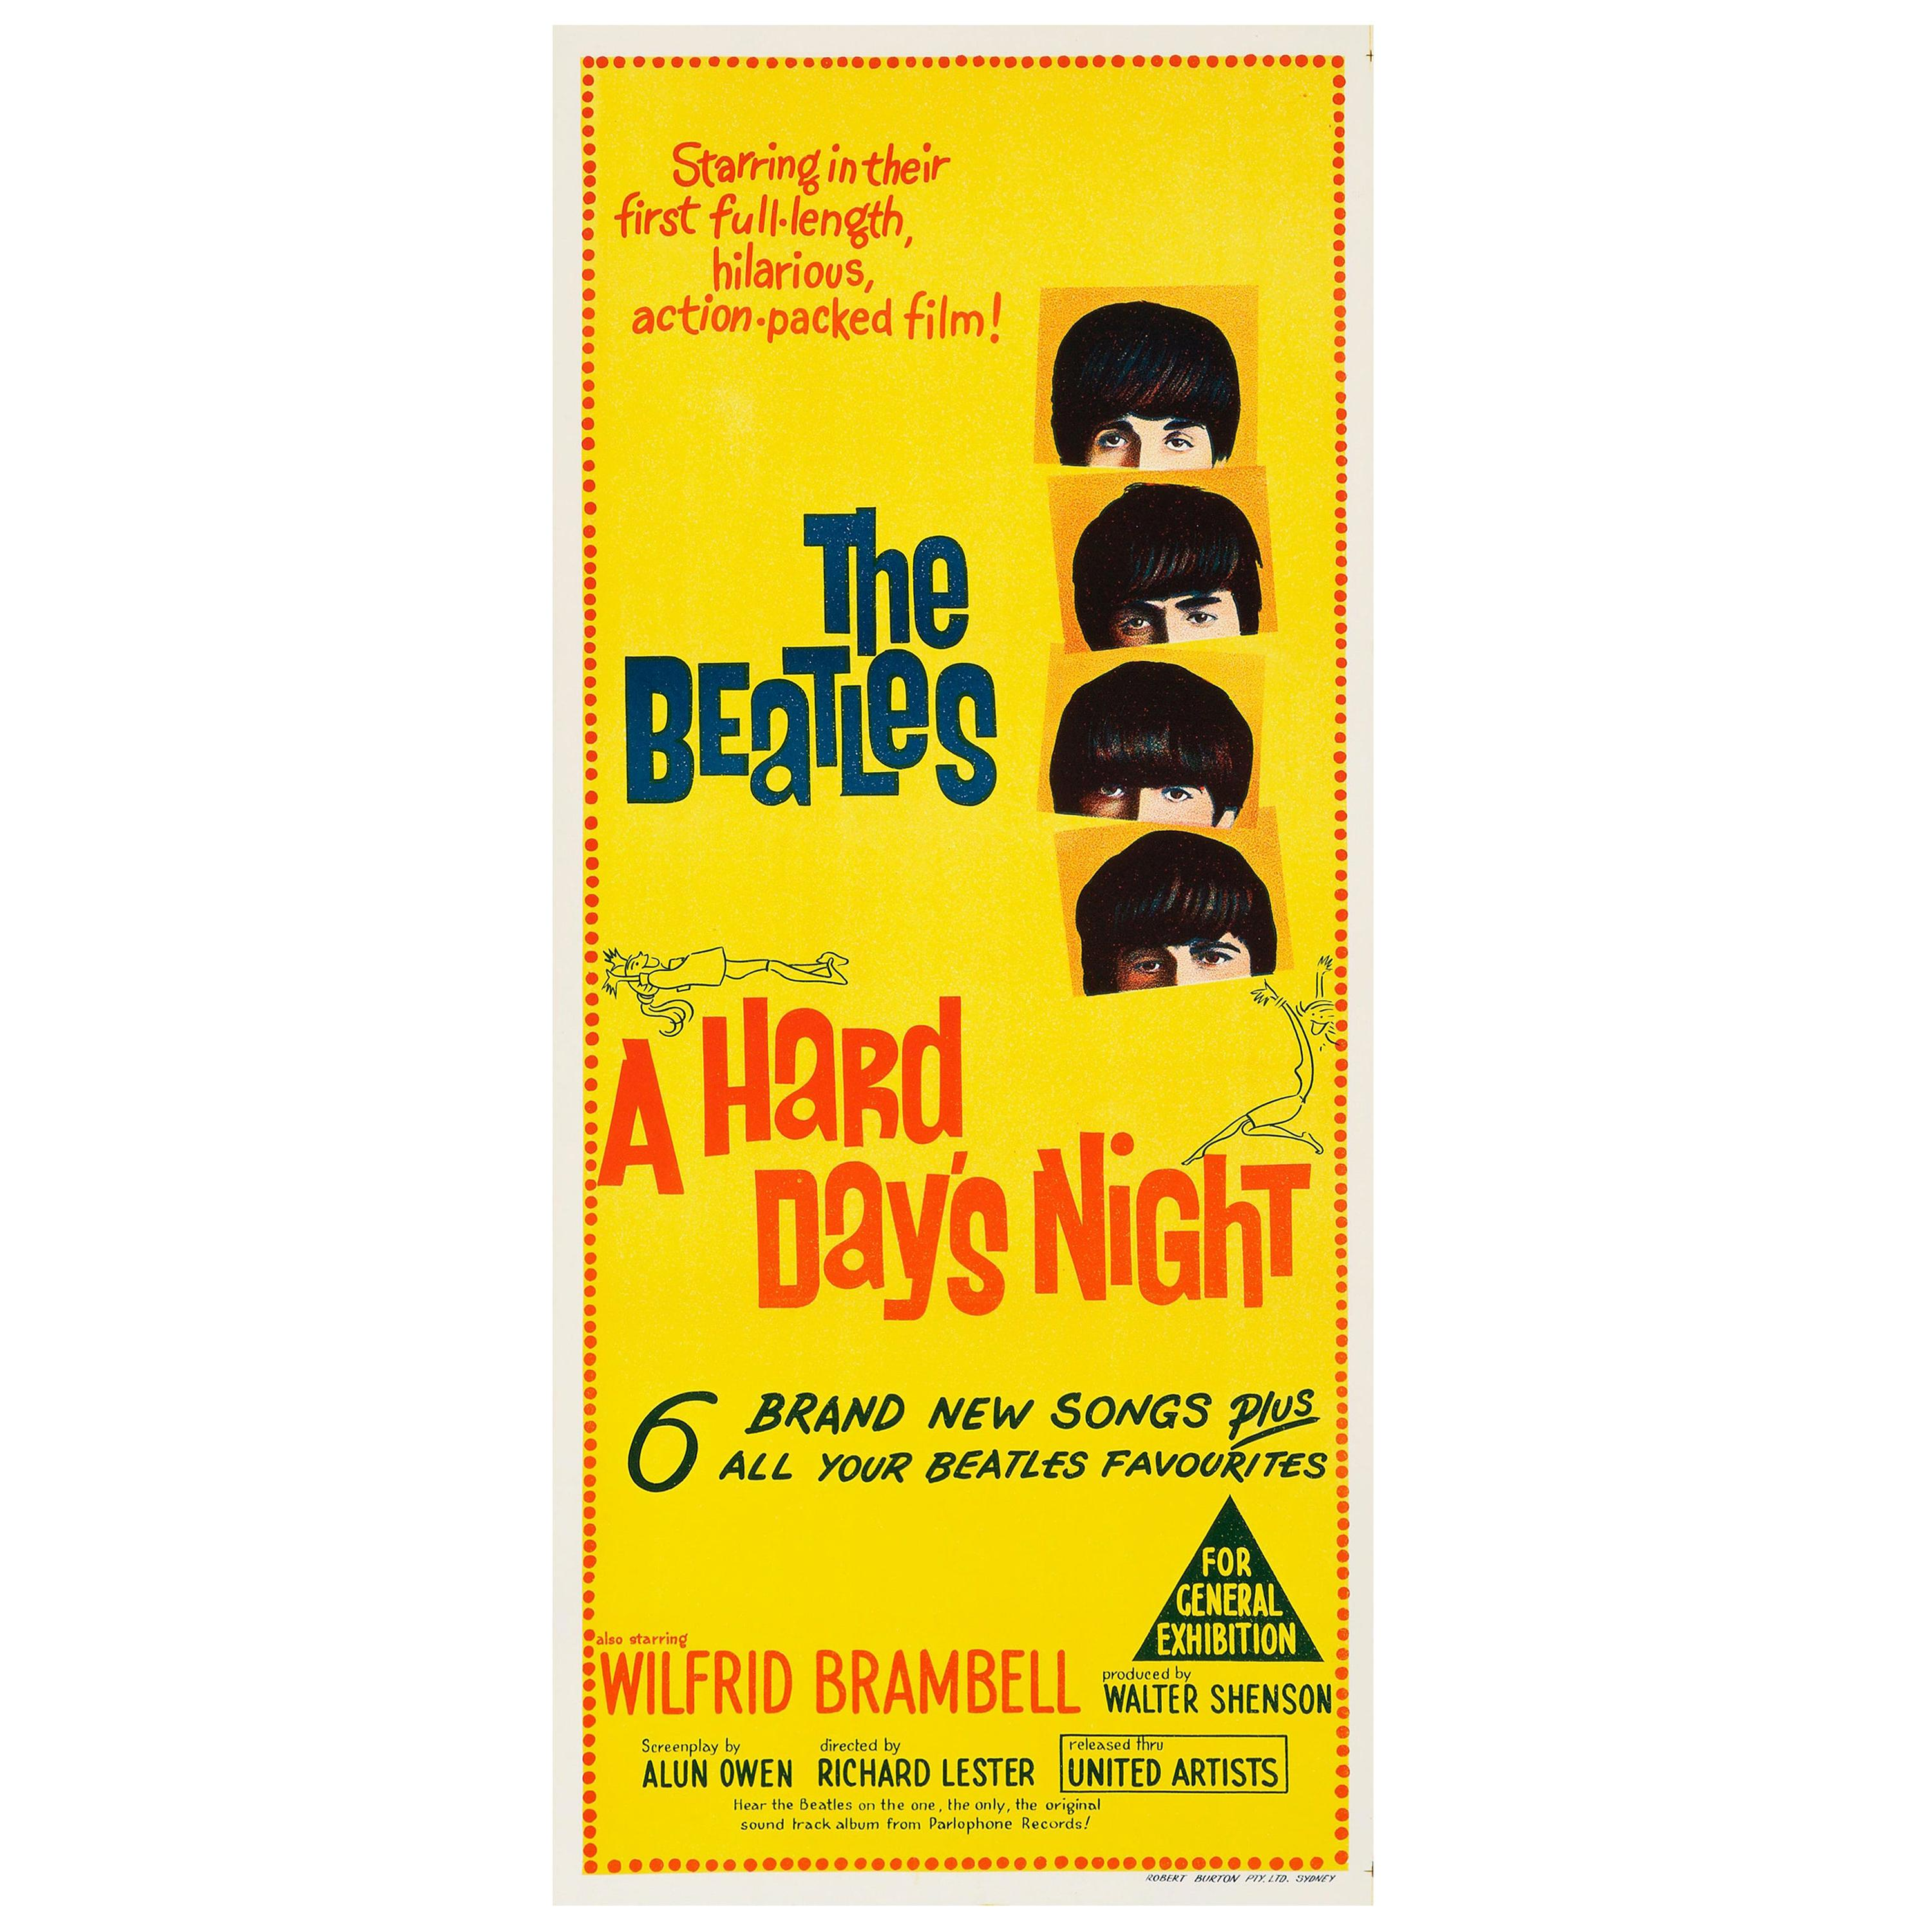 The Beatles 'A Hard Day's Night' Vintage Australian Daybill Movie Poster, 1964